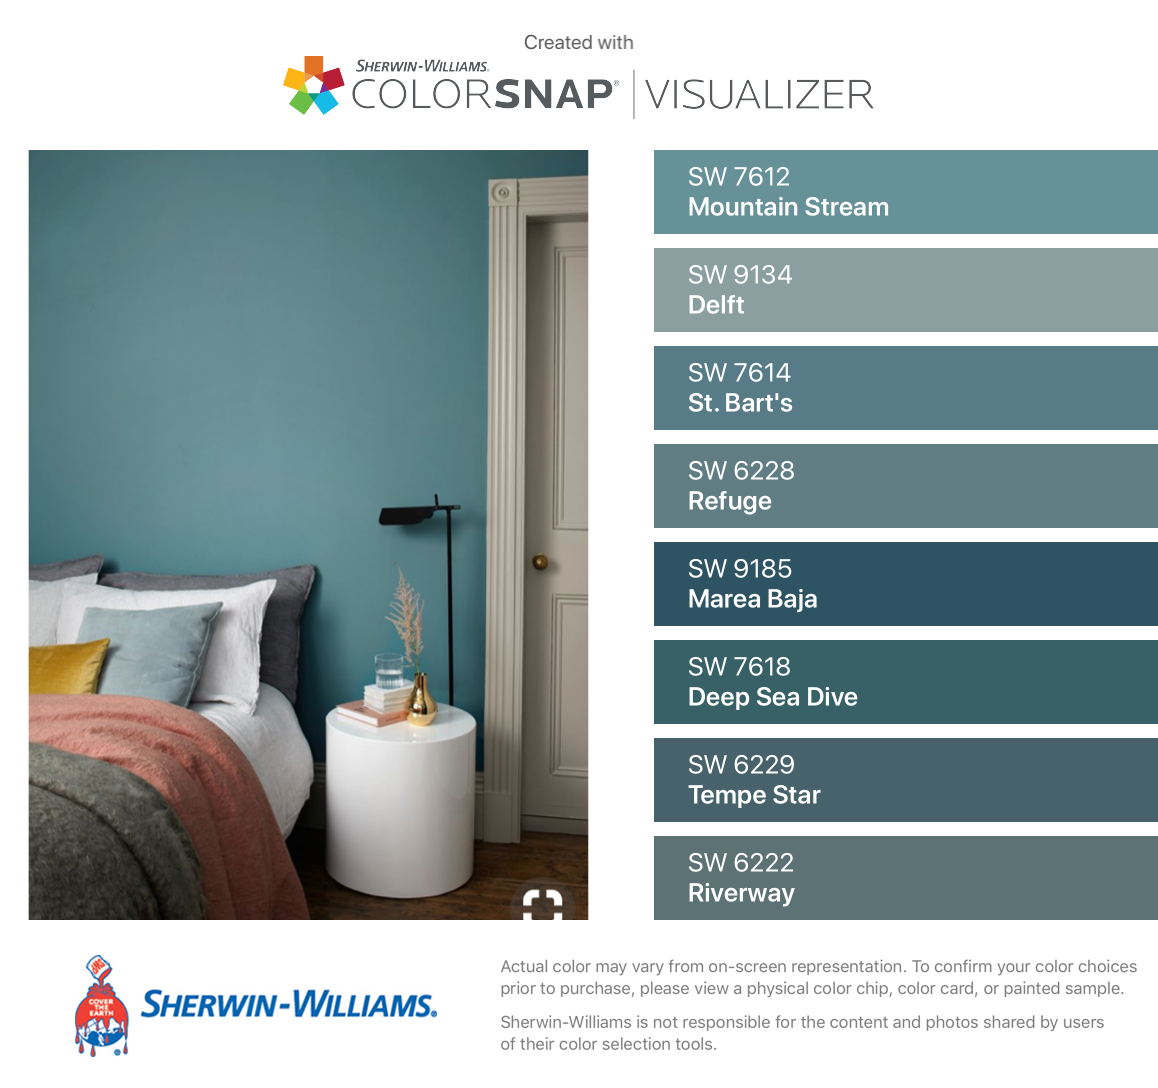 I Found These Colors With Colorsnap Visualizer For Iphone By Sherwin William Interior Paint Colors For Living Room Paint Colors For Home Matching Paint Colors